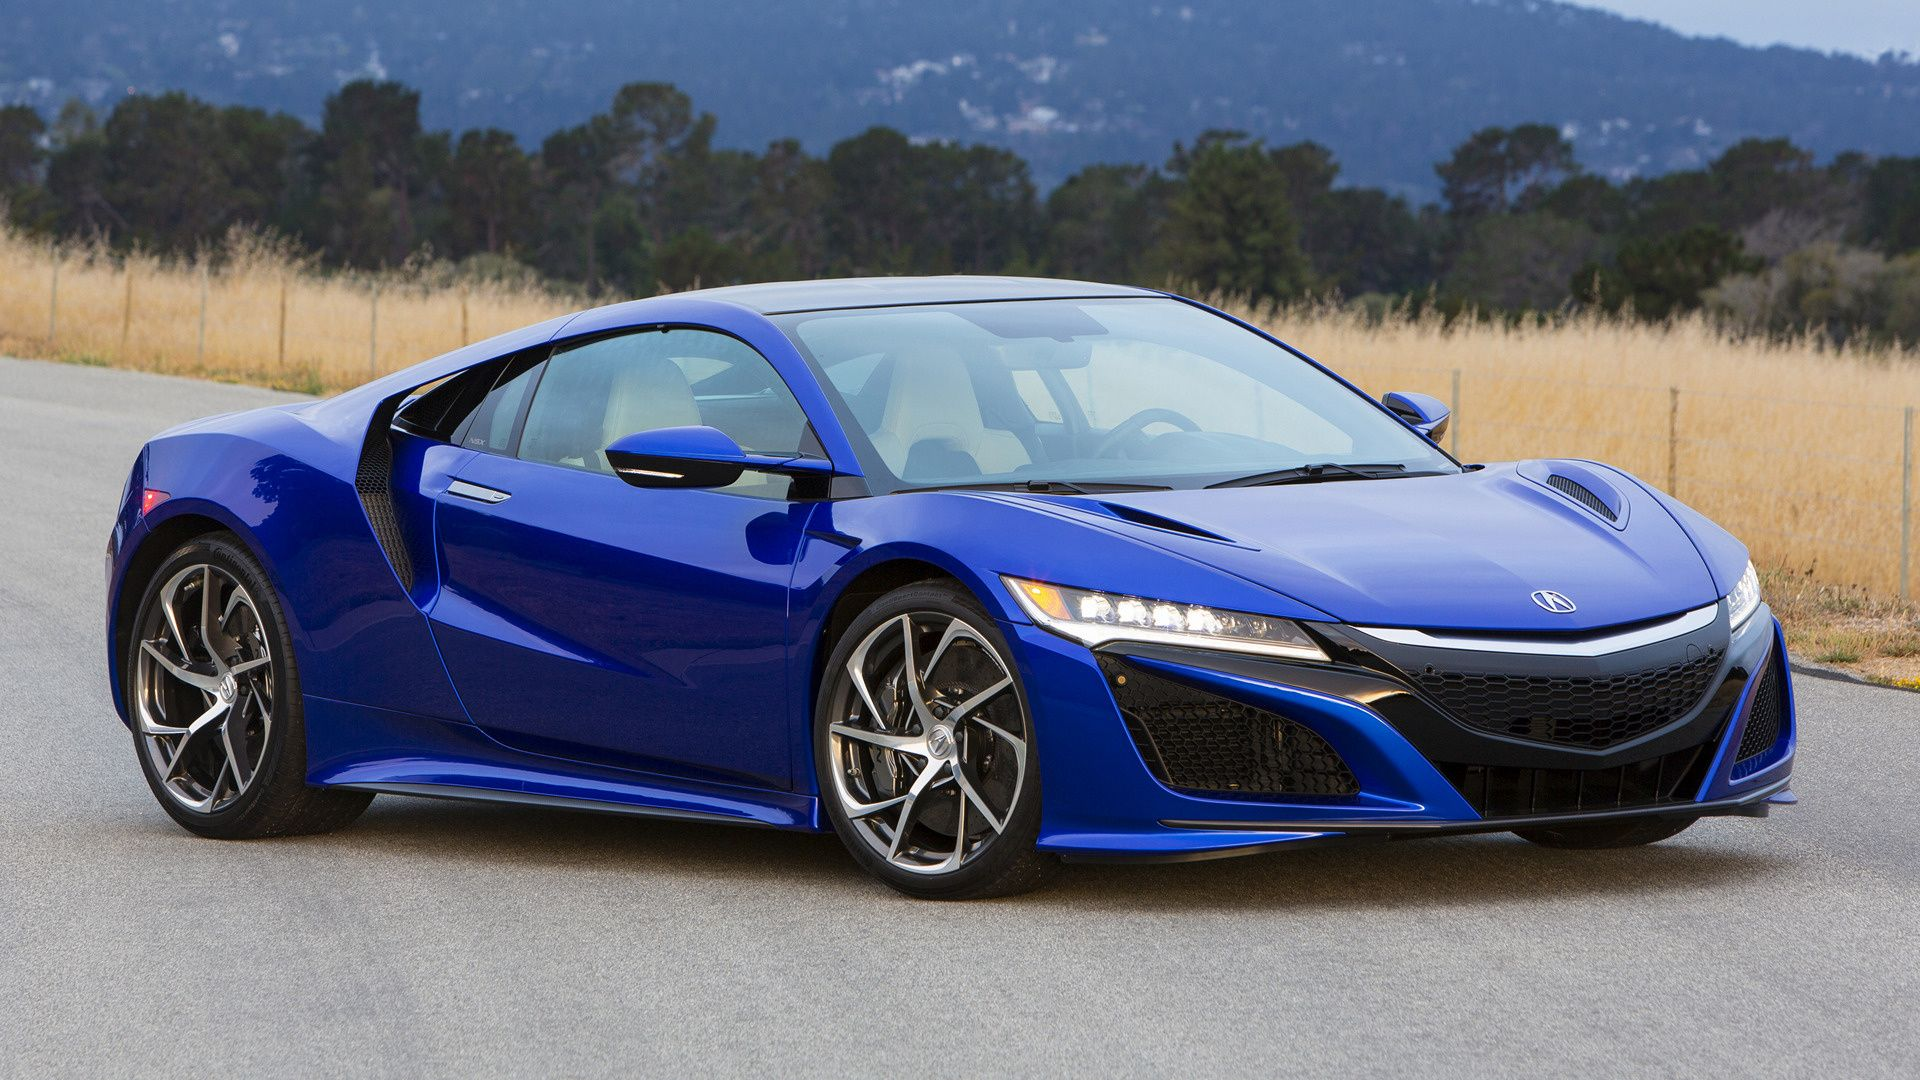 Acura NSX Wallpapers : Get Free Top Quality Acura NSX